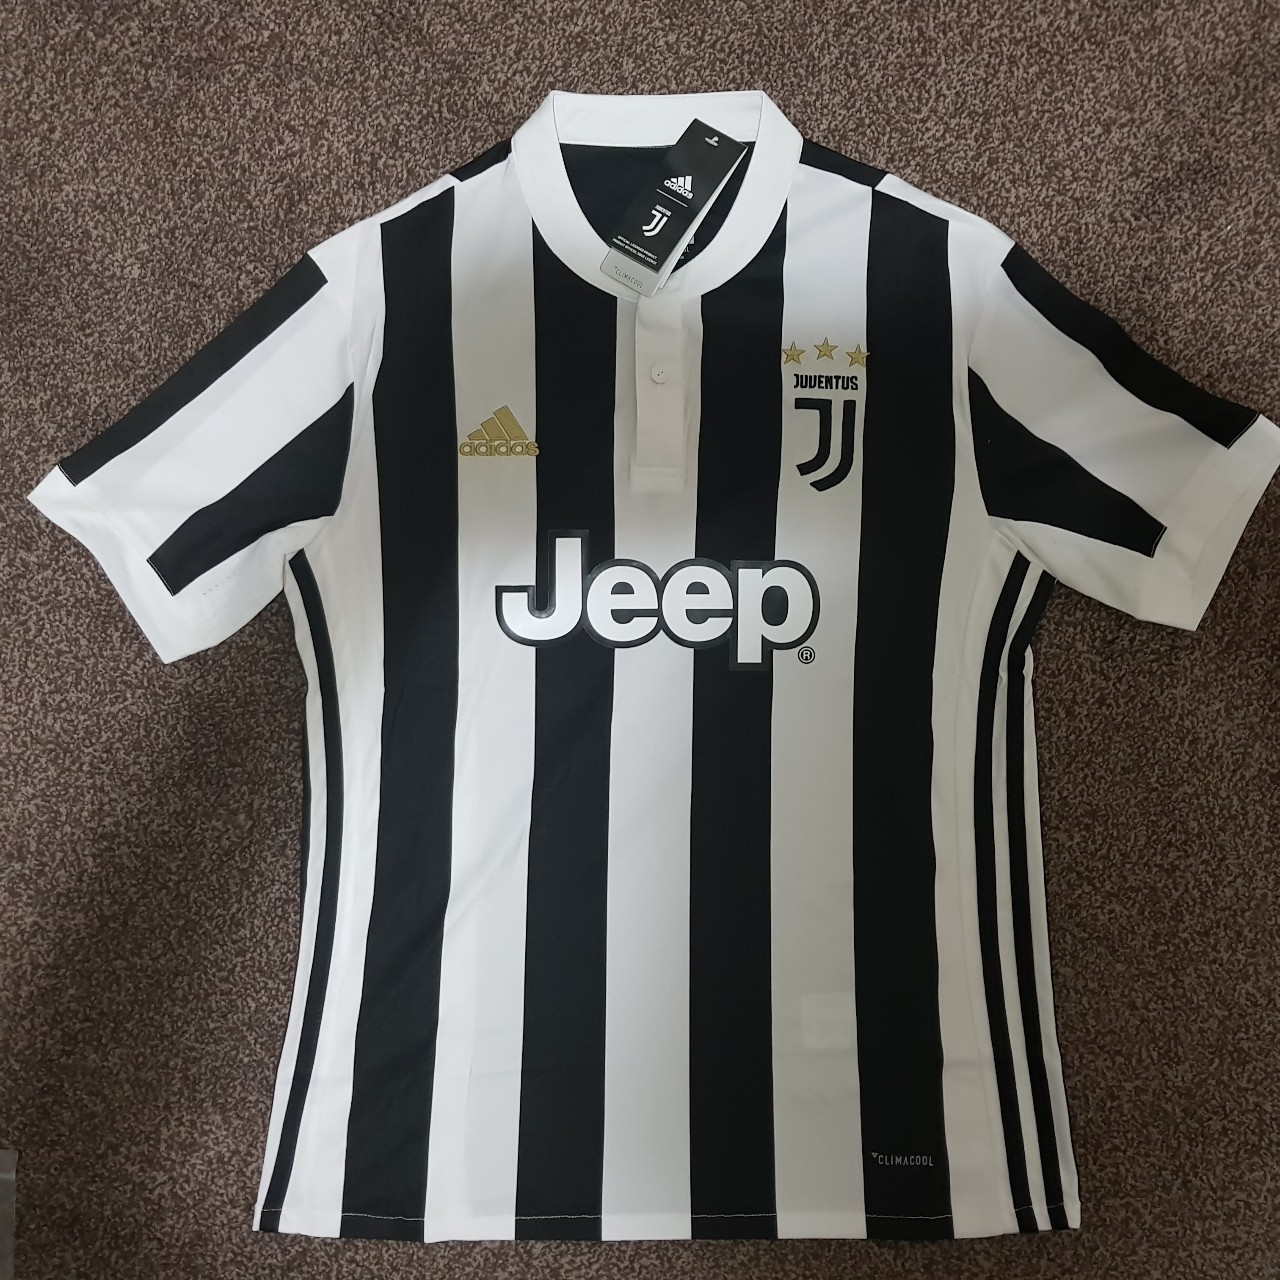 best service 87f9a c3278 Juventus 2017/2018 Home kit/ jersey + Sealed with... - Depop